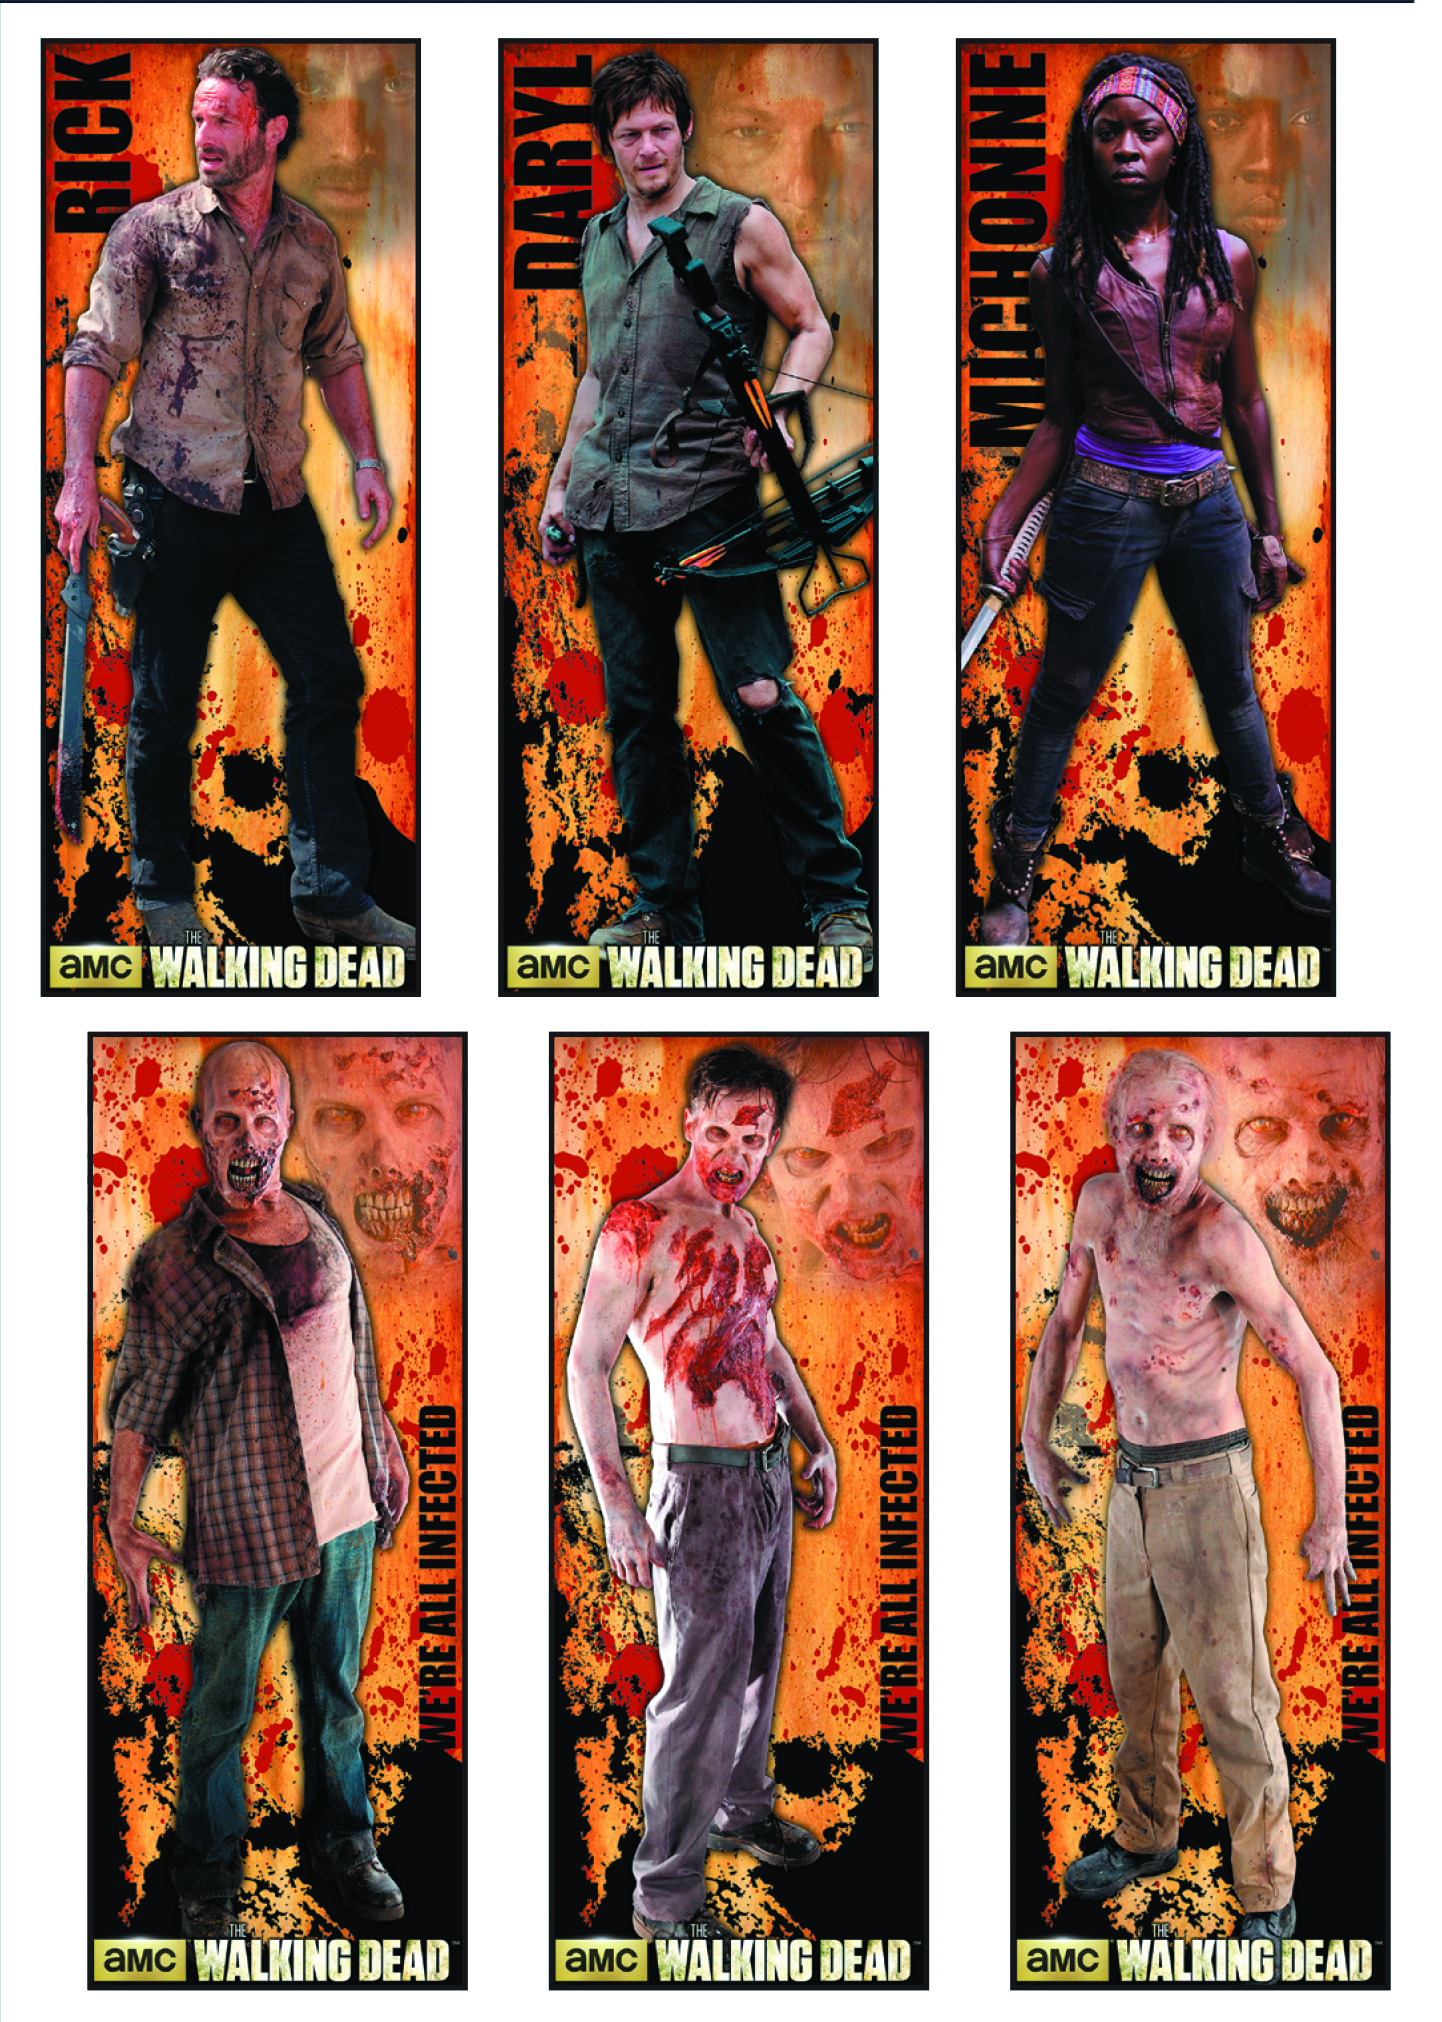 WALKING DEAD 24PC 30X76 ROLLED POSTER DUMP